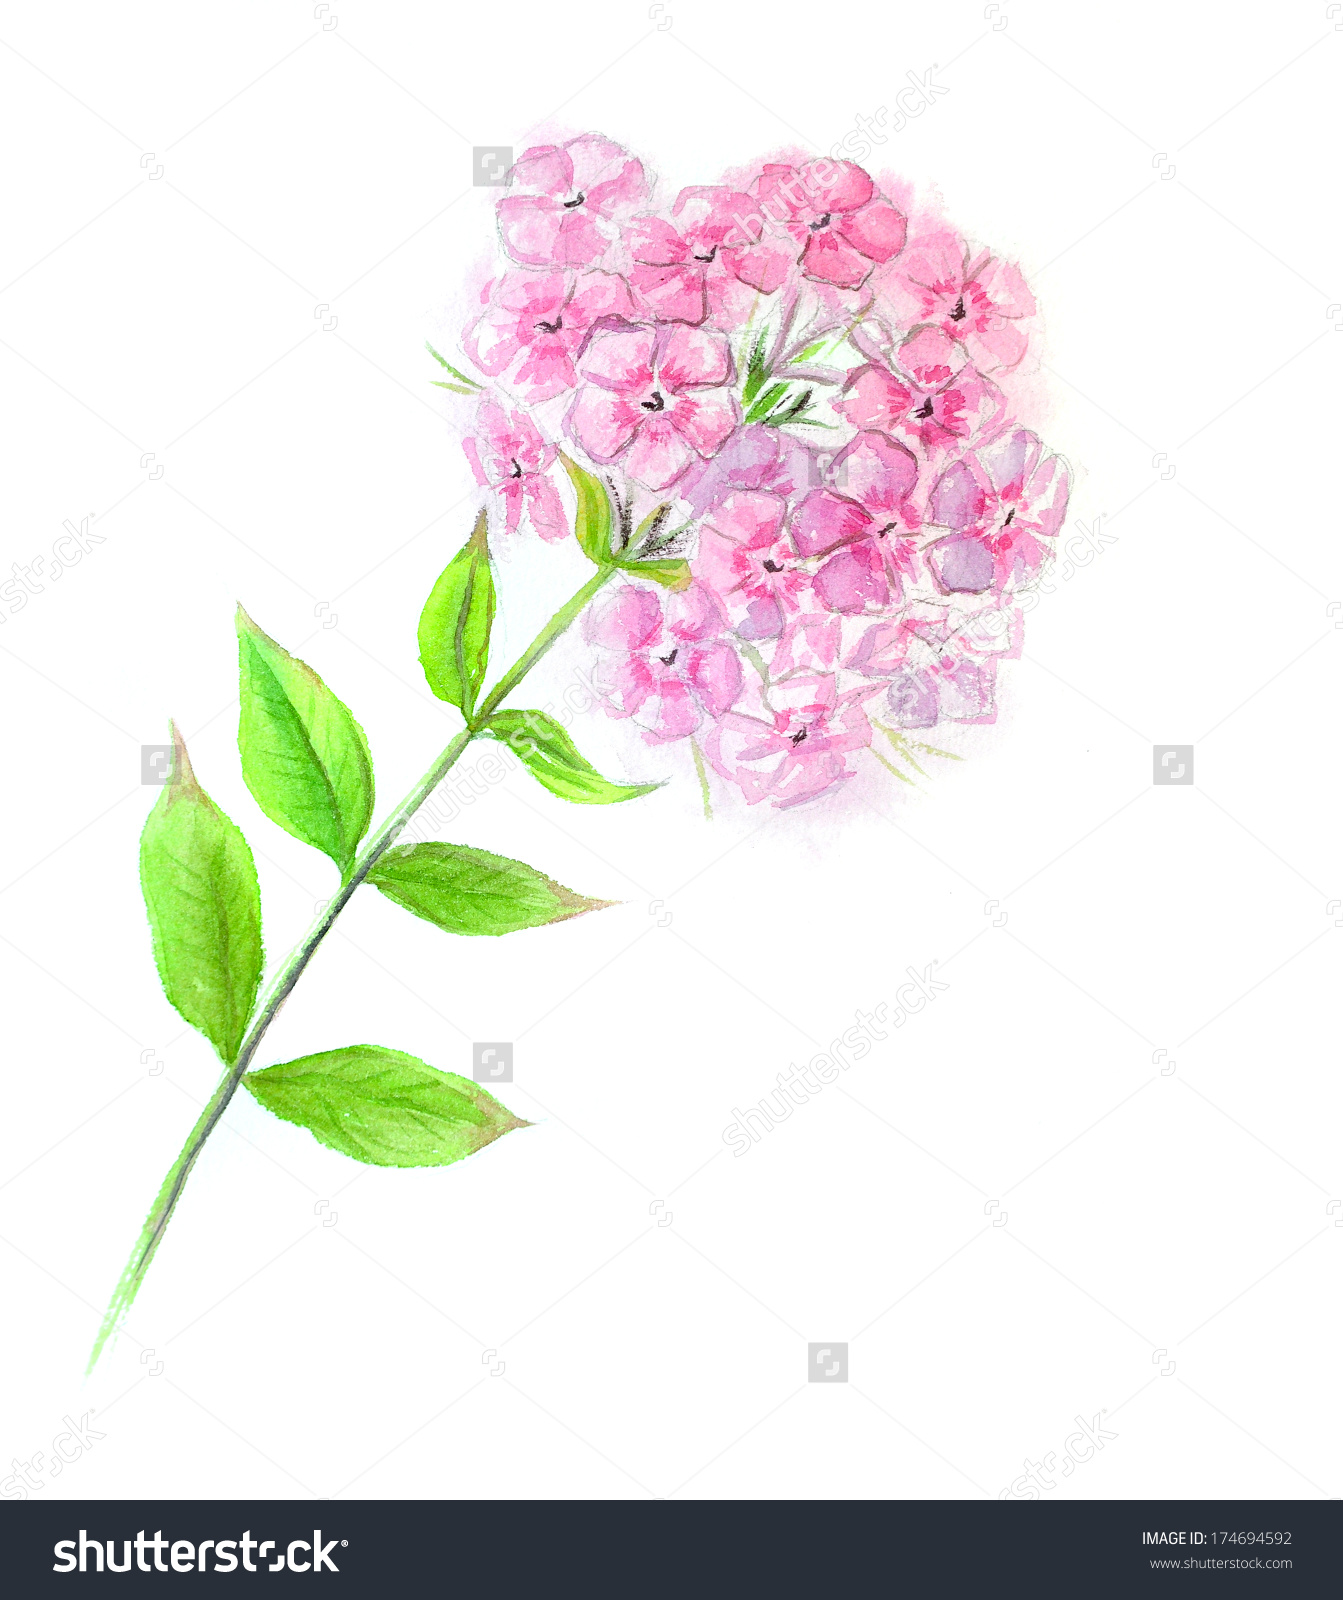 Phlox clipart #2, Download drawings